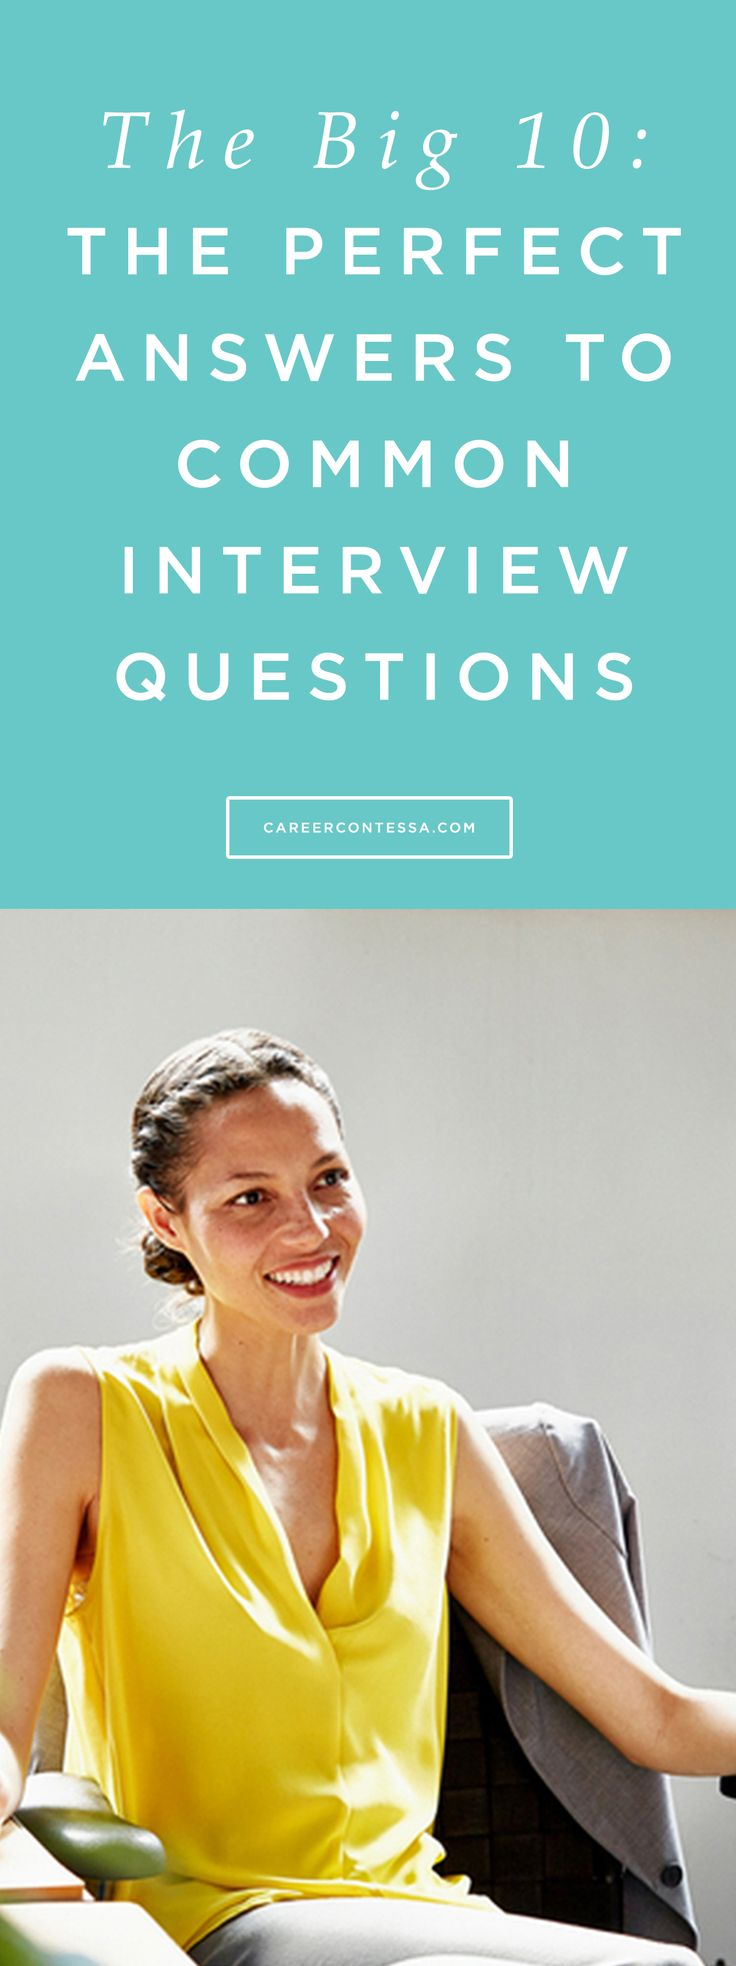 nurse interview questions and answers NurseBuff